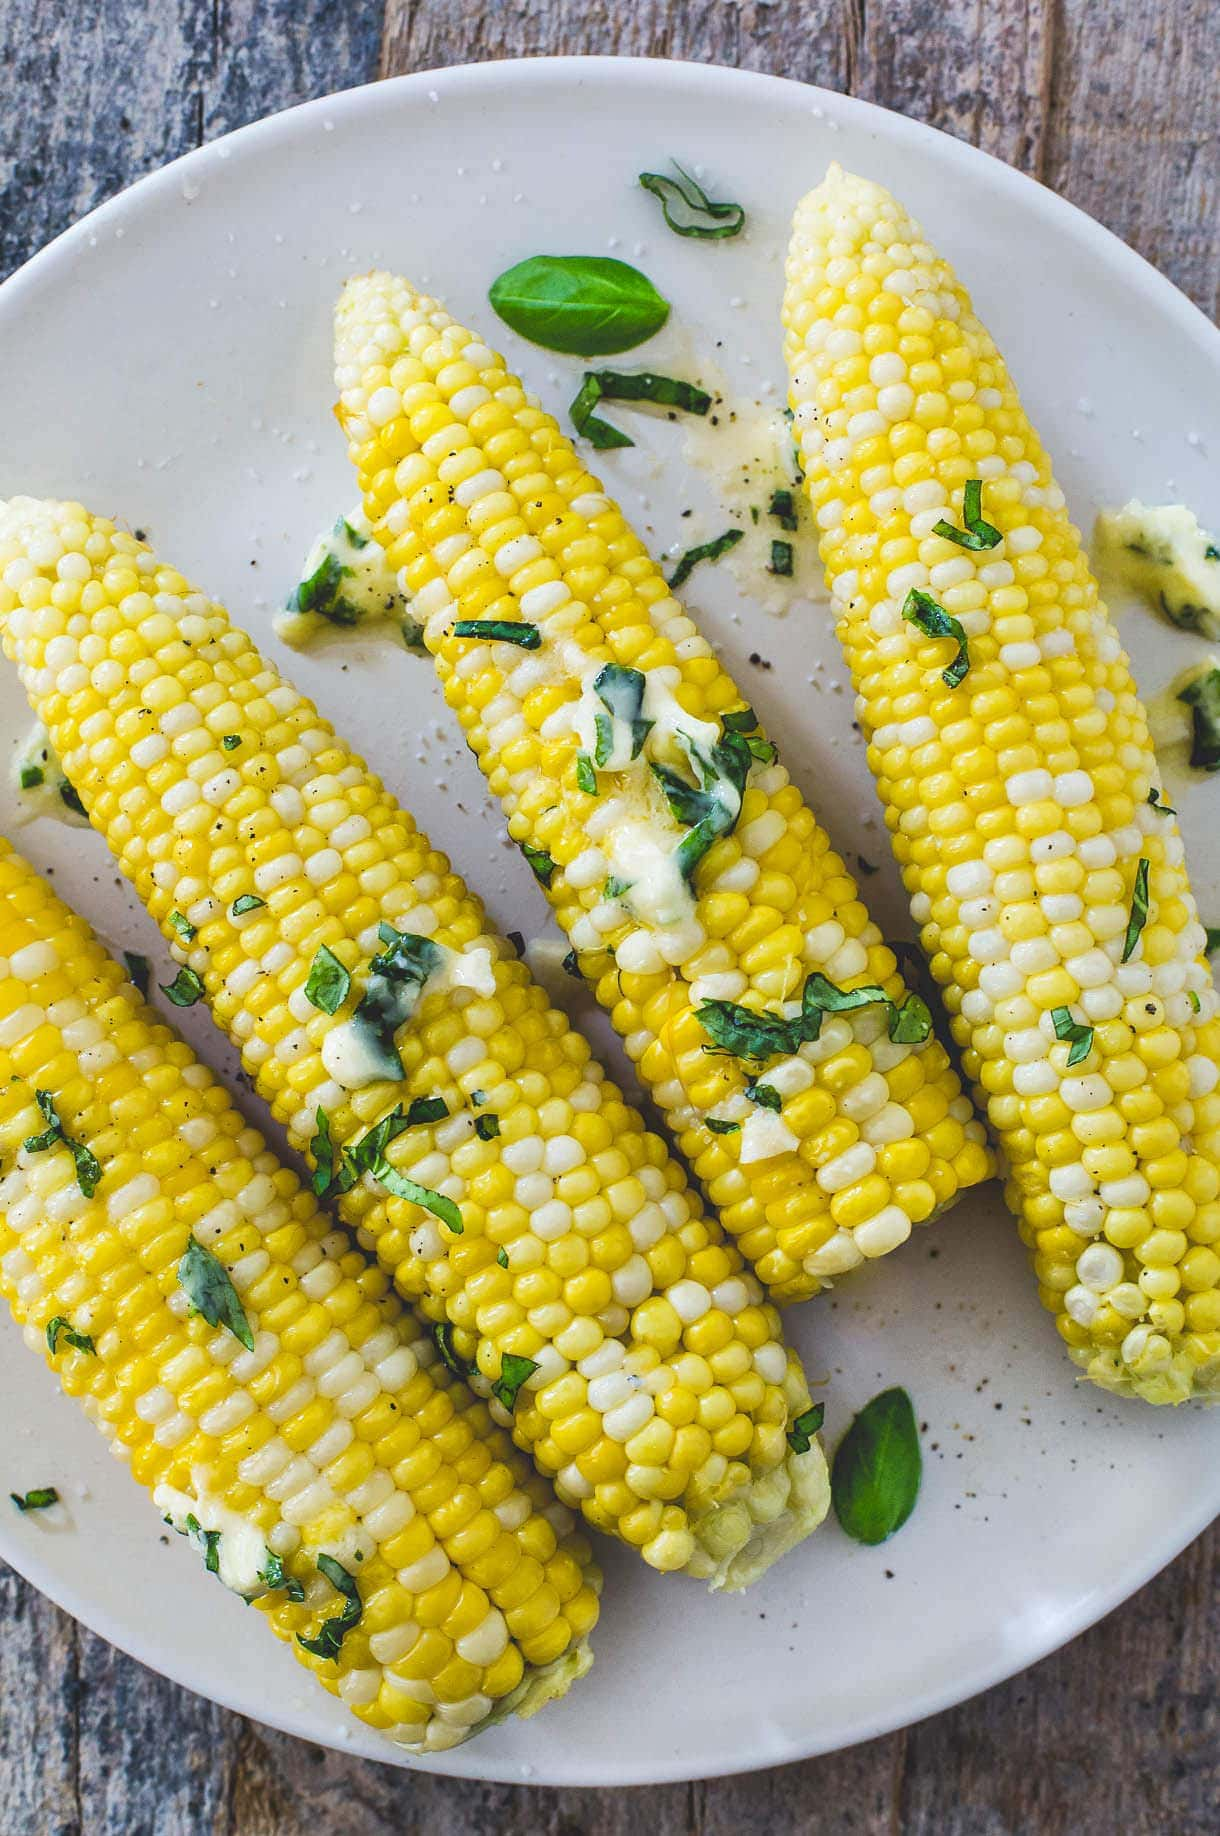 After years of quick boiling corn on the cob, here are my tips for ...